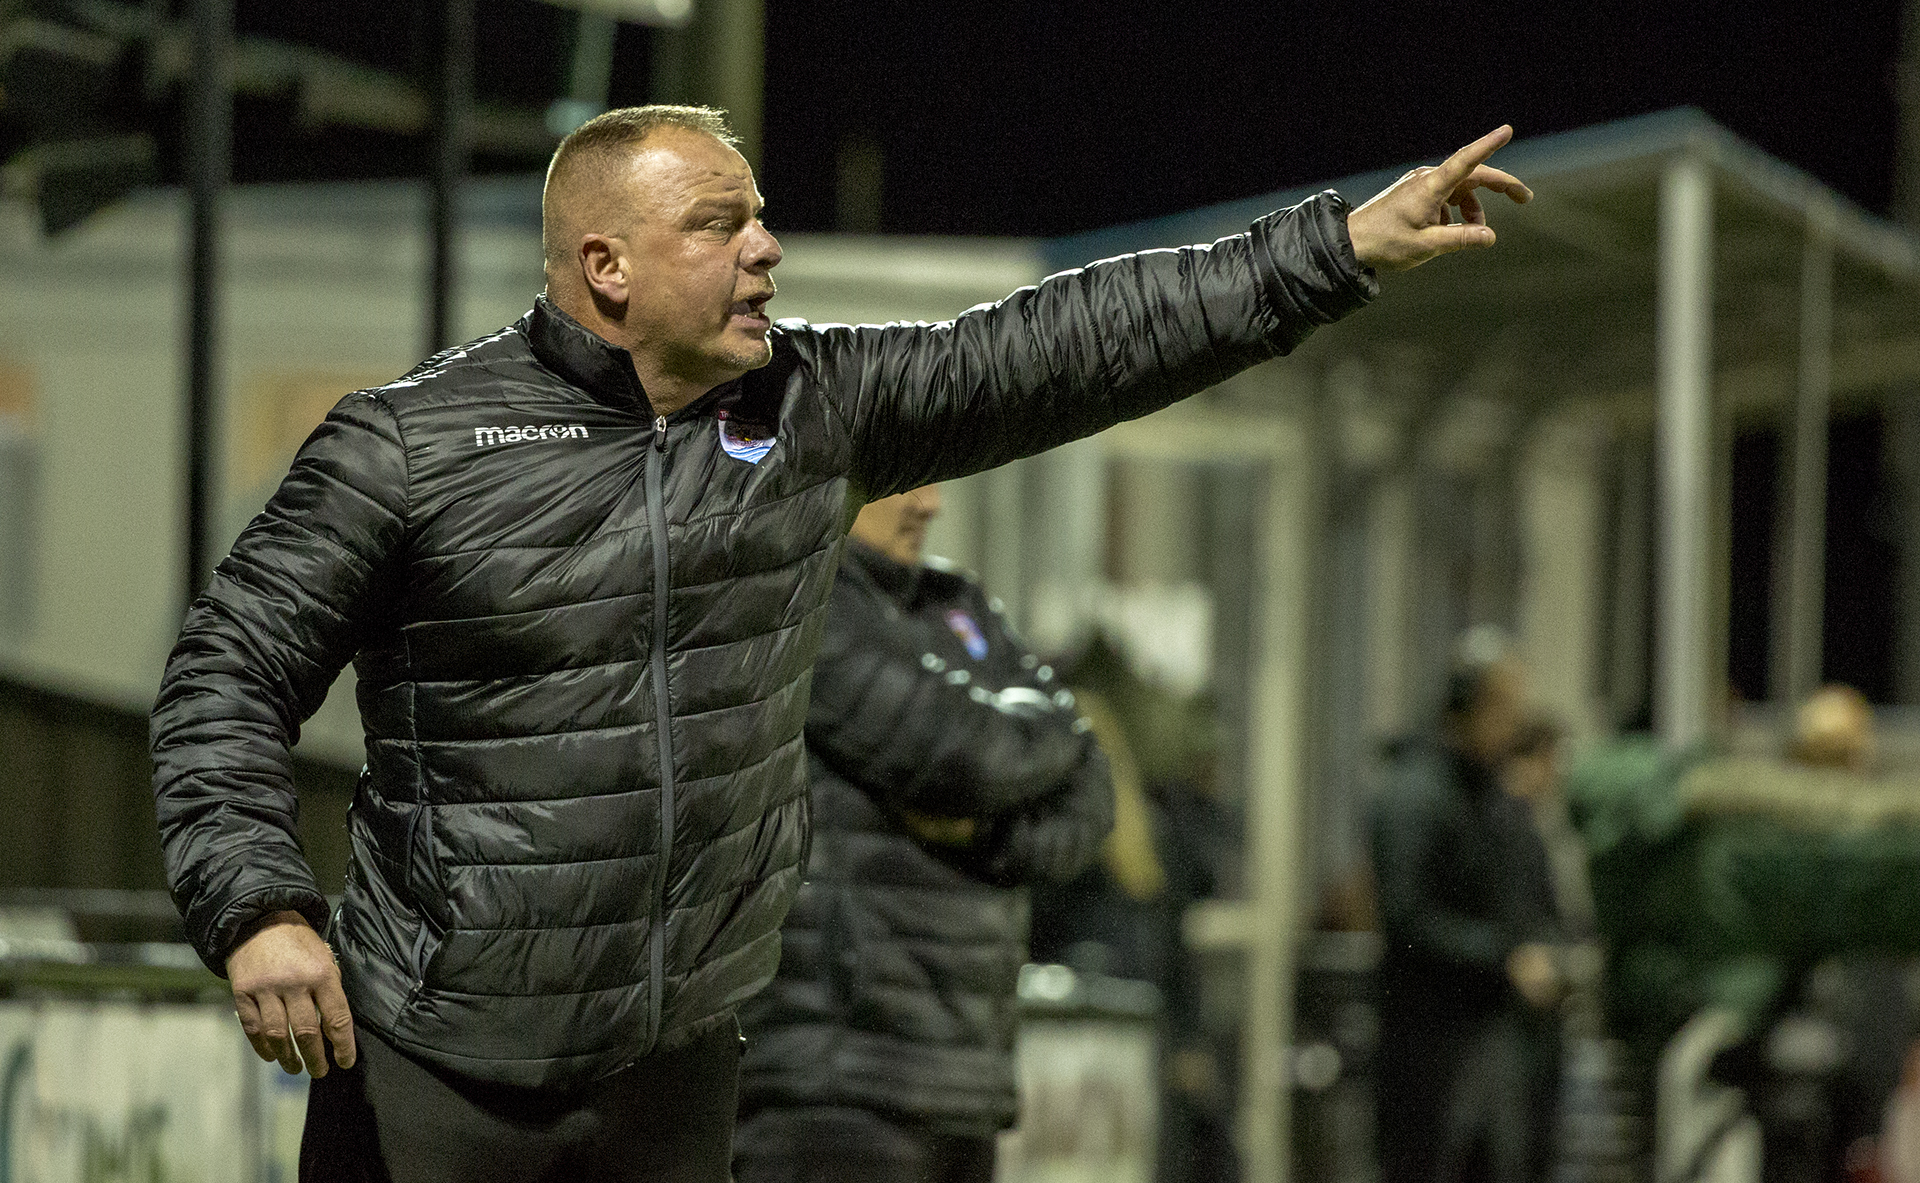 Andy Morrison pictured during The Nomads' 4-0 victory at Llandudno © NCM Media